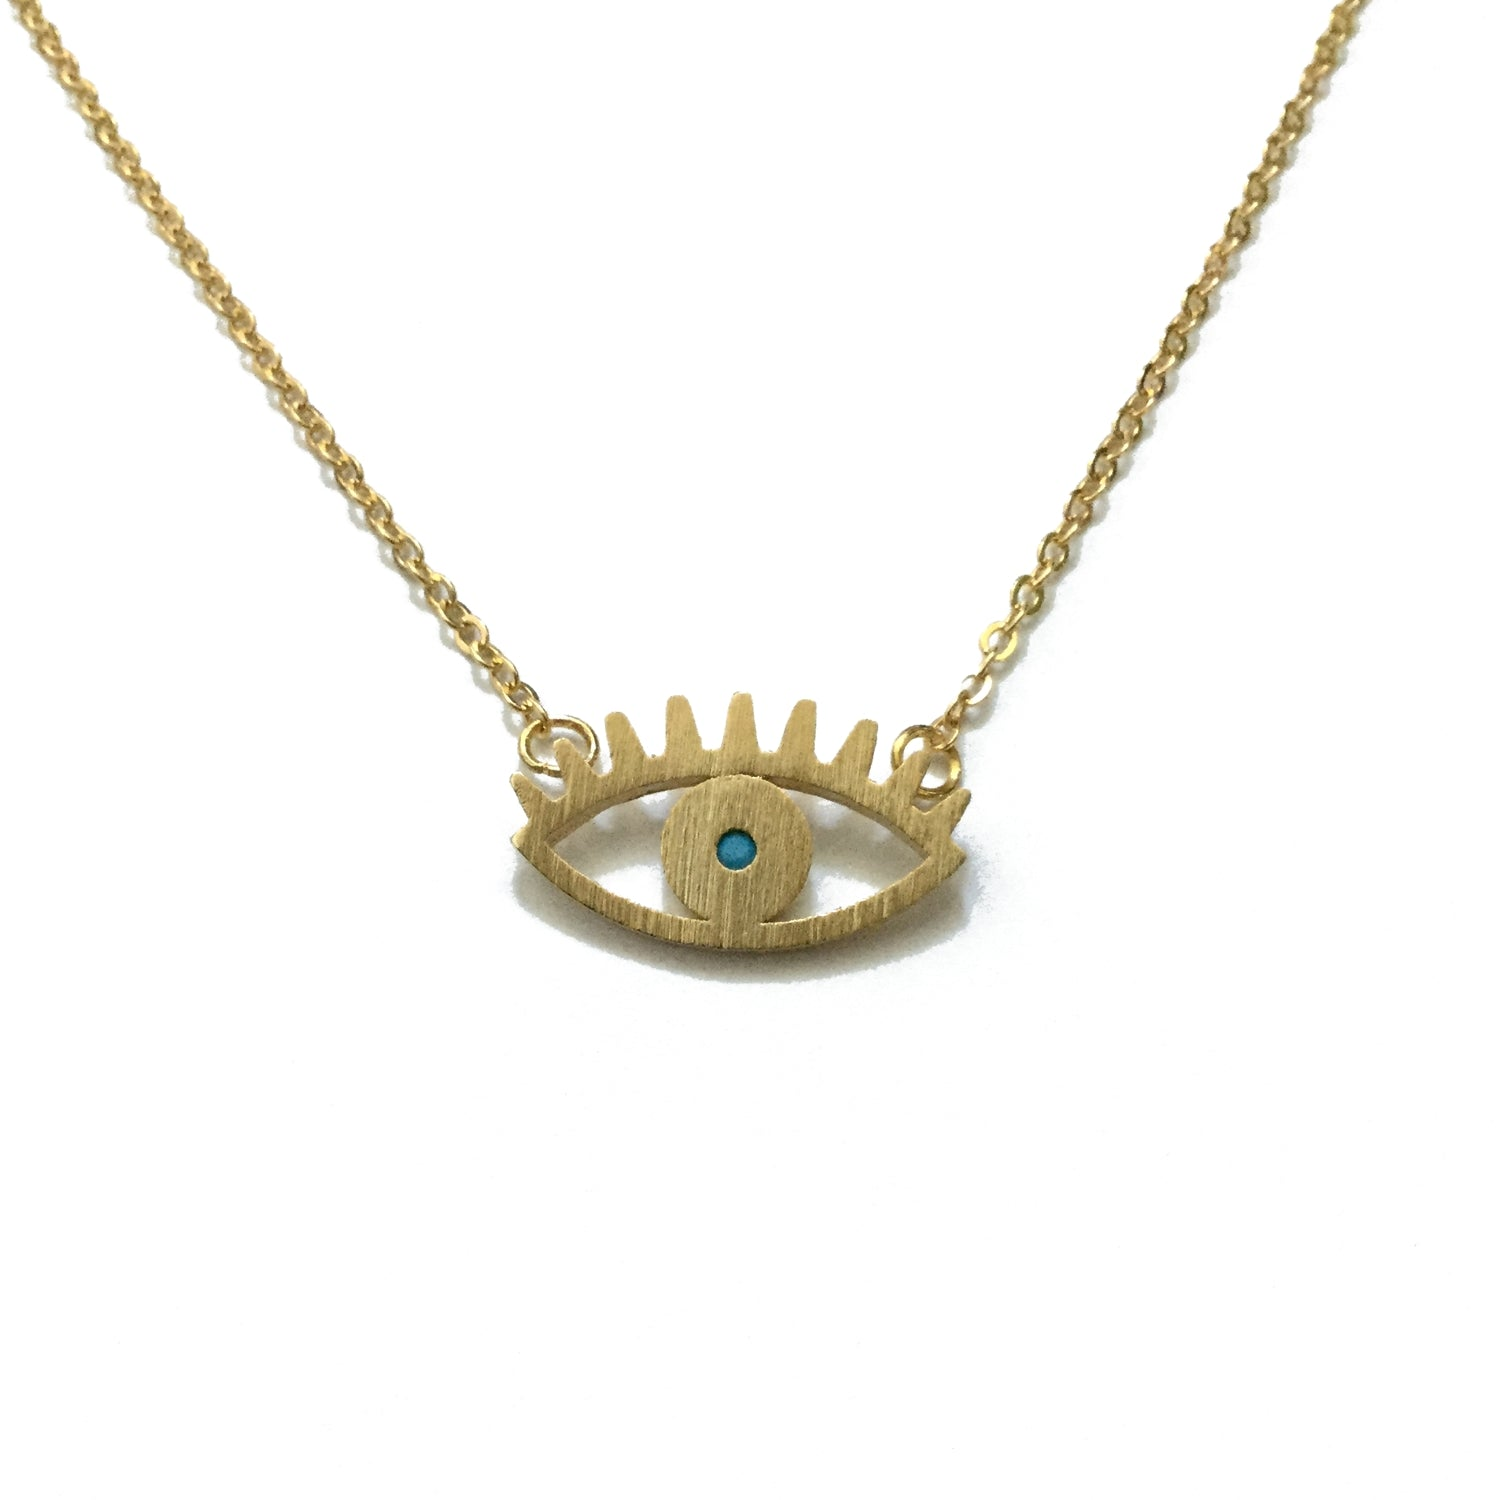 Gold plated matte evil eye with a tiny turquoise bead in the centre pendant necklace